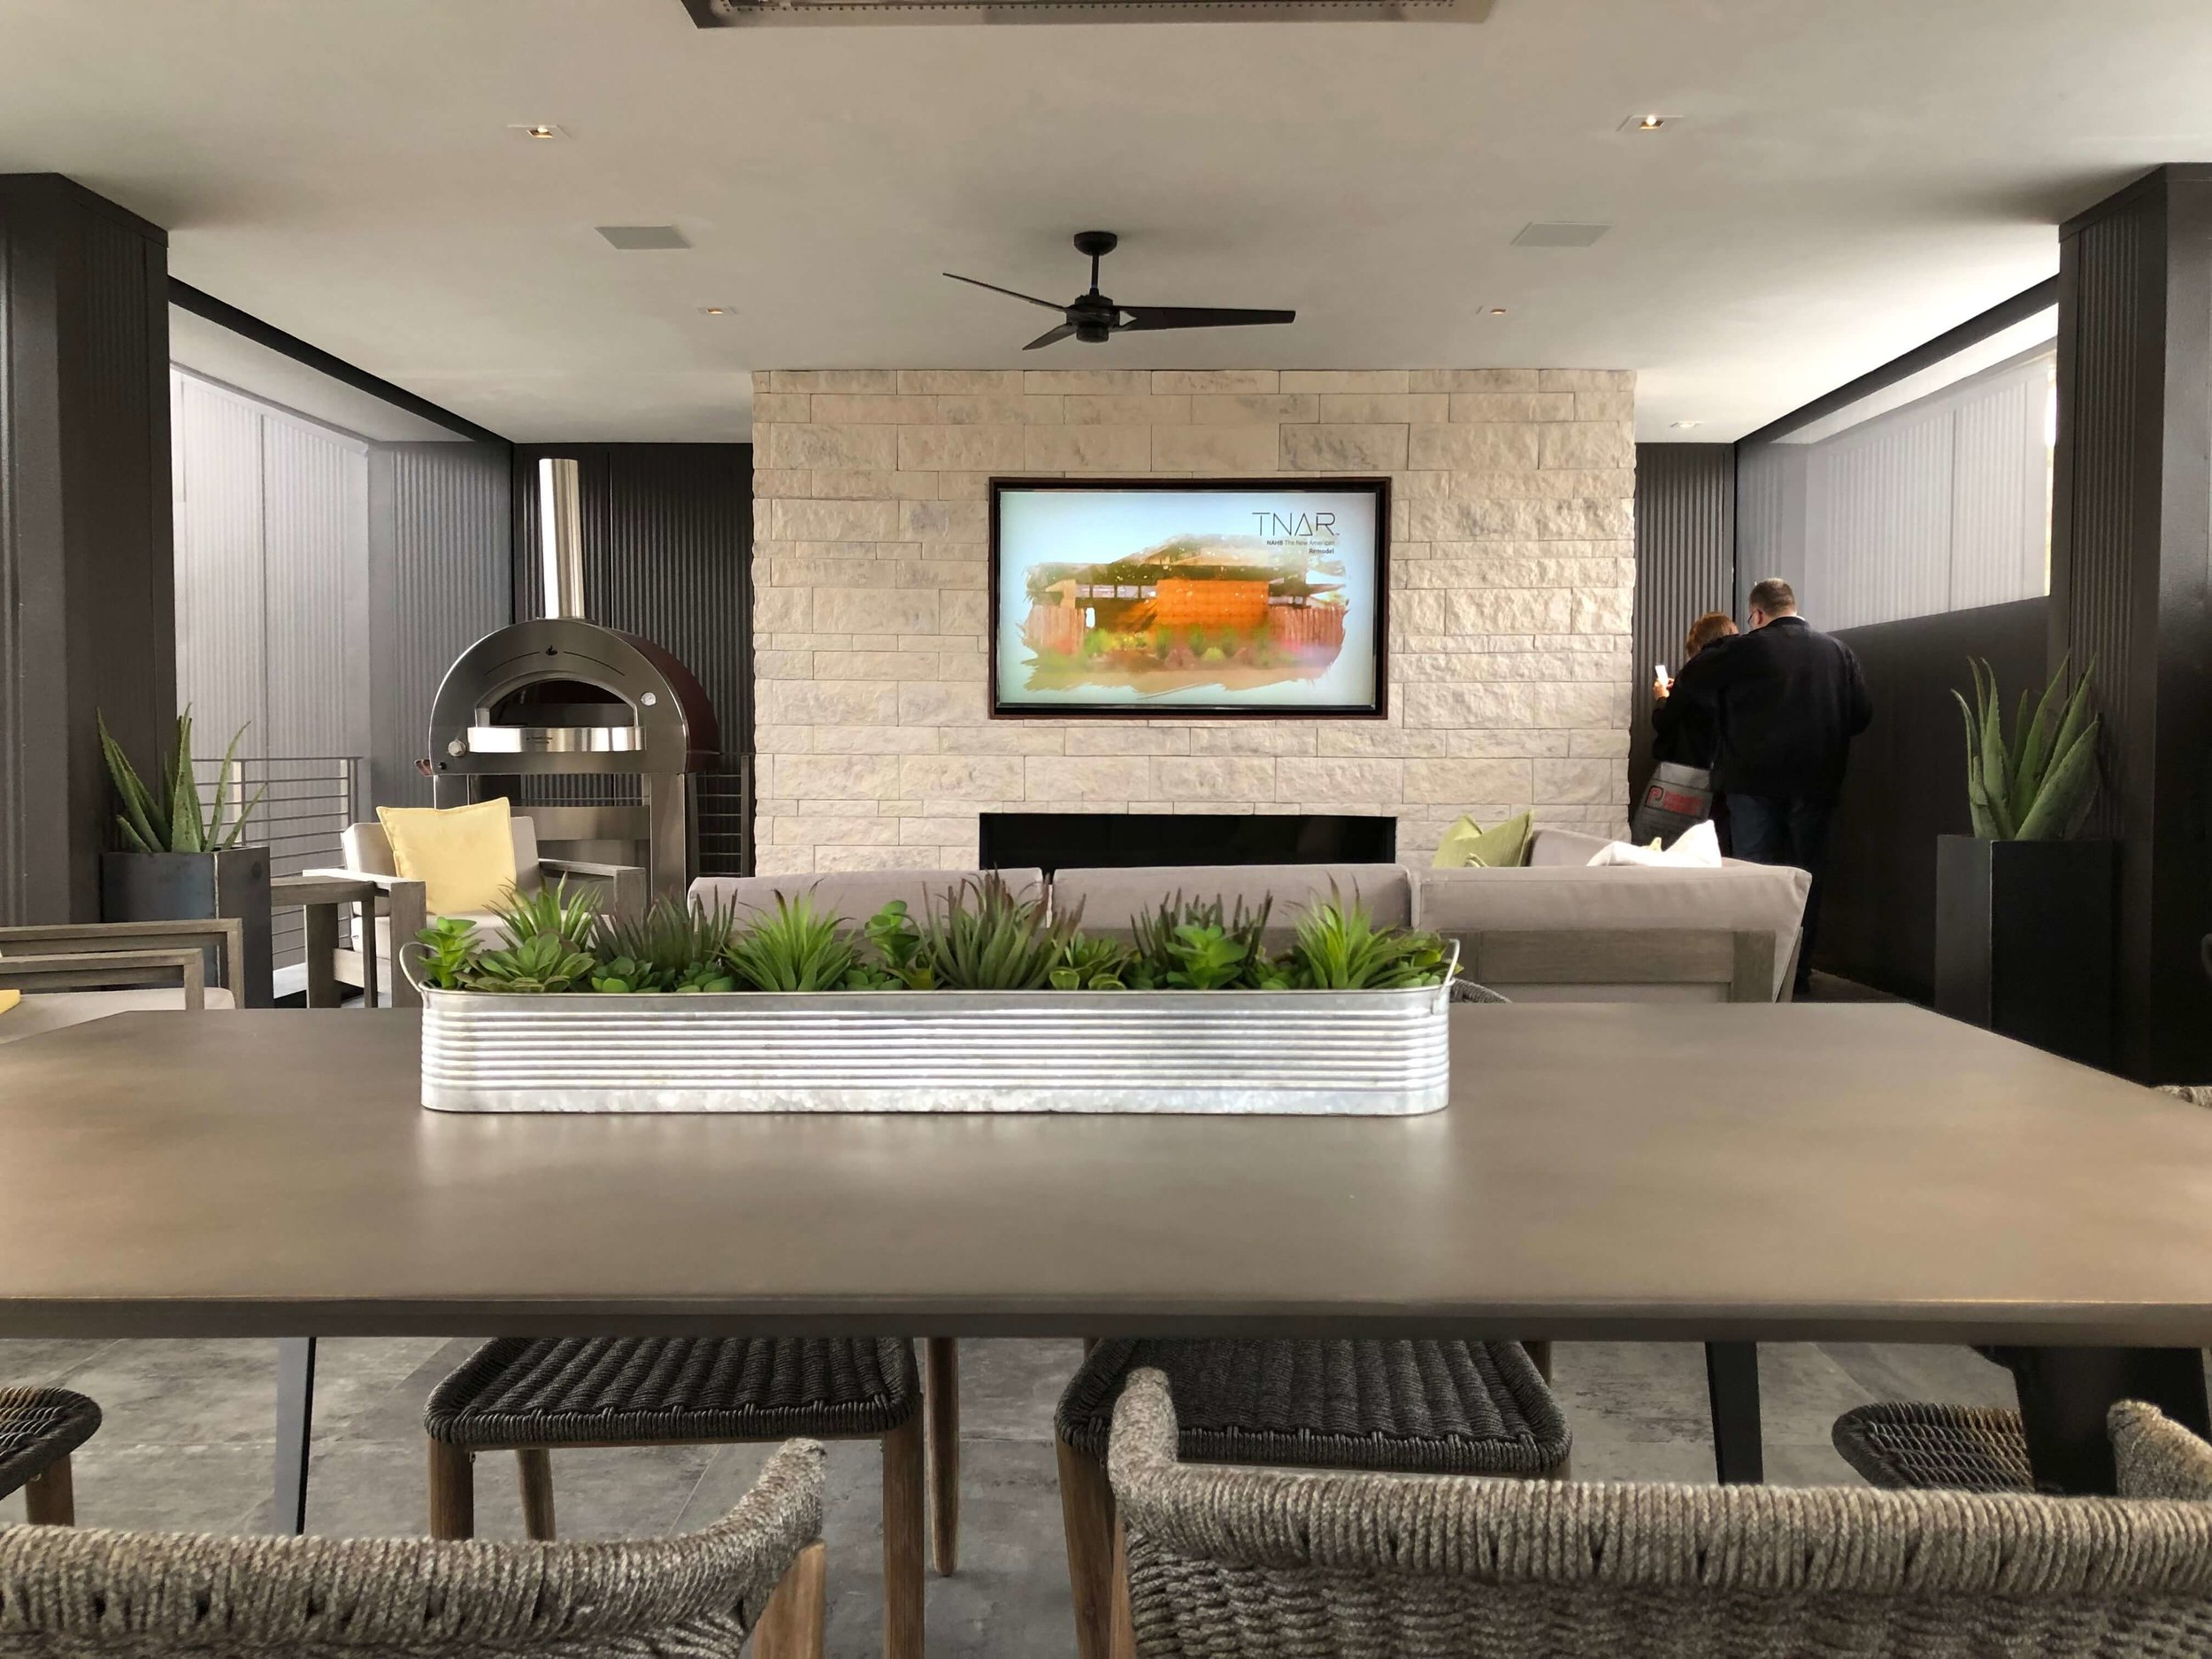 This outdoor living lounge area has a kitchen, fireplace with tv, seating and dining spaces, even a pizza oven! The New American Remodel 2019. #gameroom #outdoorliving #hometour #contemporaryhome